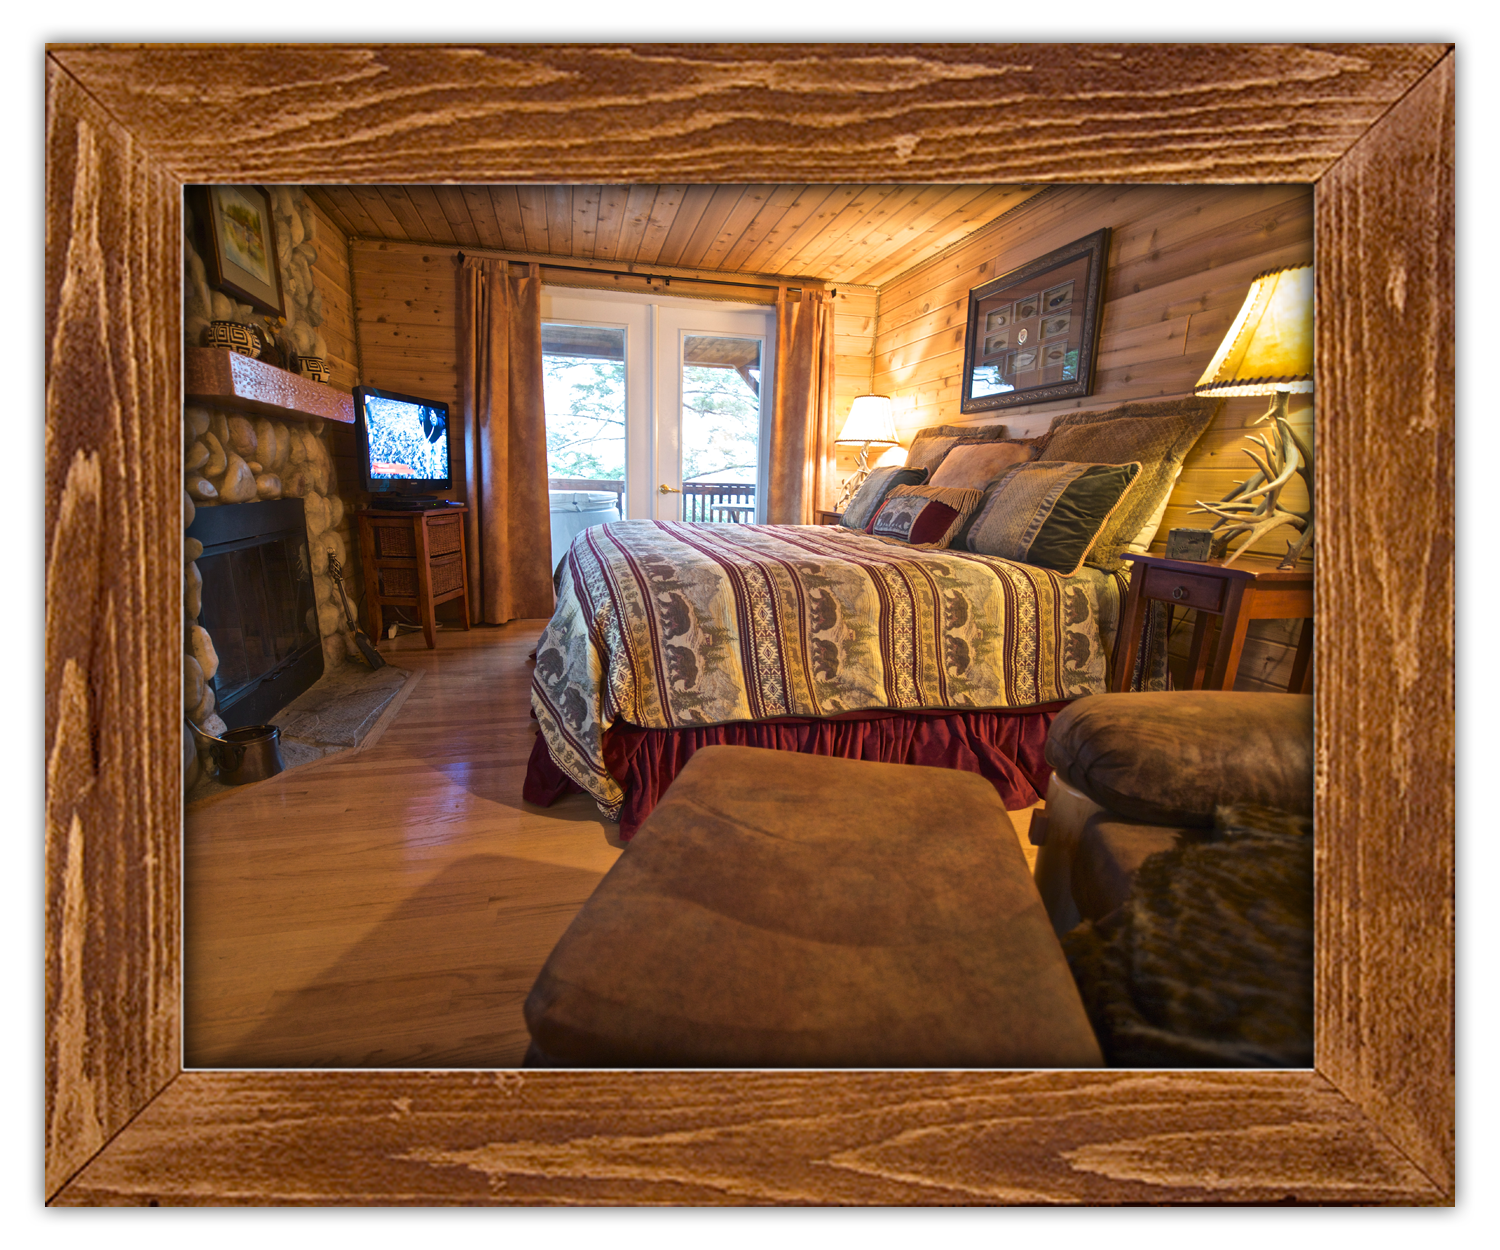 Lodge Room Design: Luxury Fishing Lodge In Alaska, Sitka Alaska Luxury